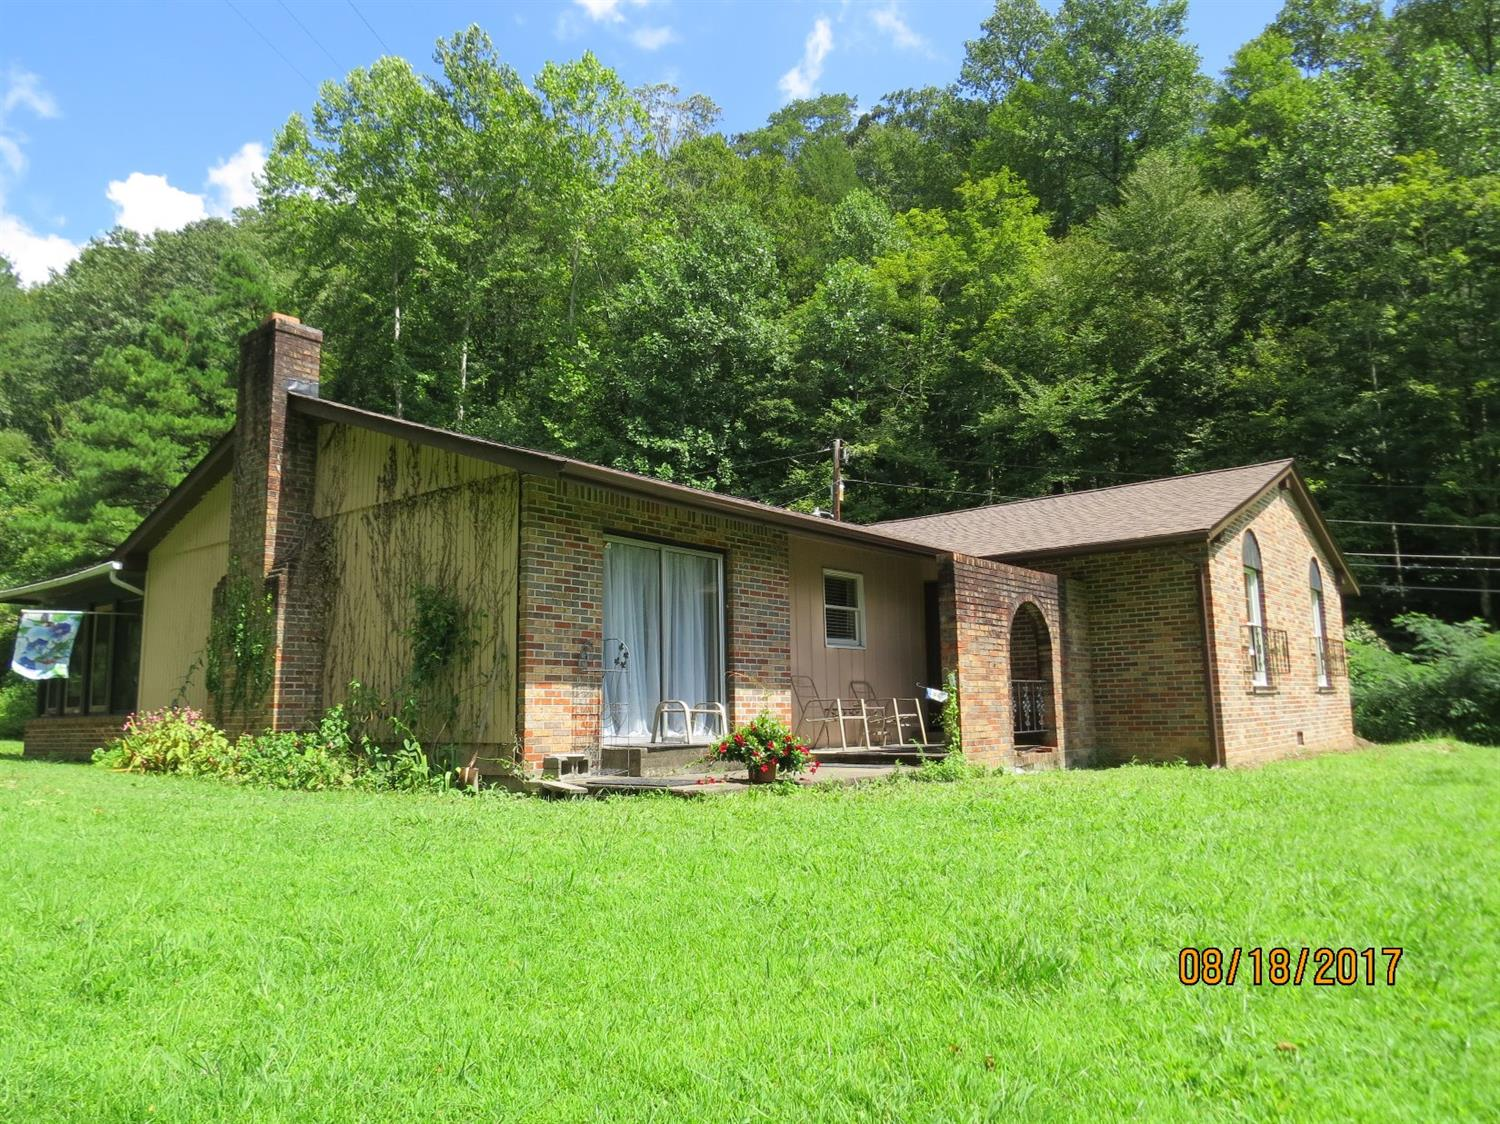 4518 SOUTH US HIGHWAY 119, WALLINS, KY 40873  Photo 3